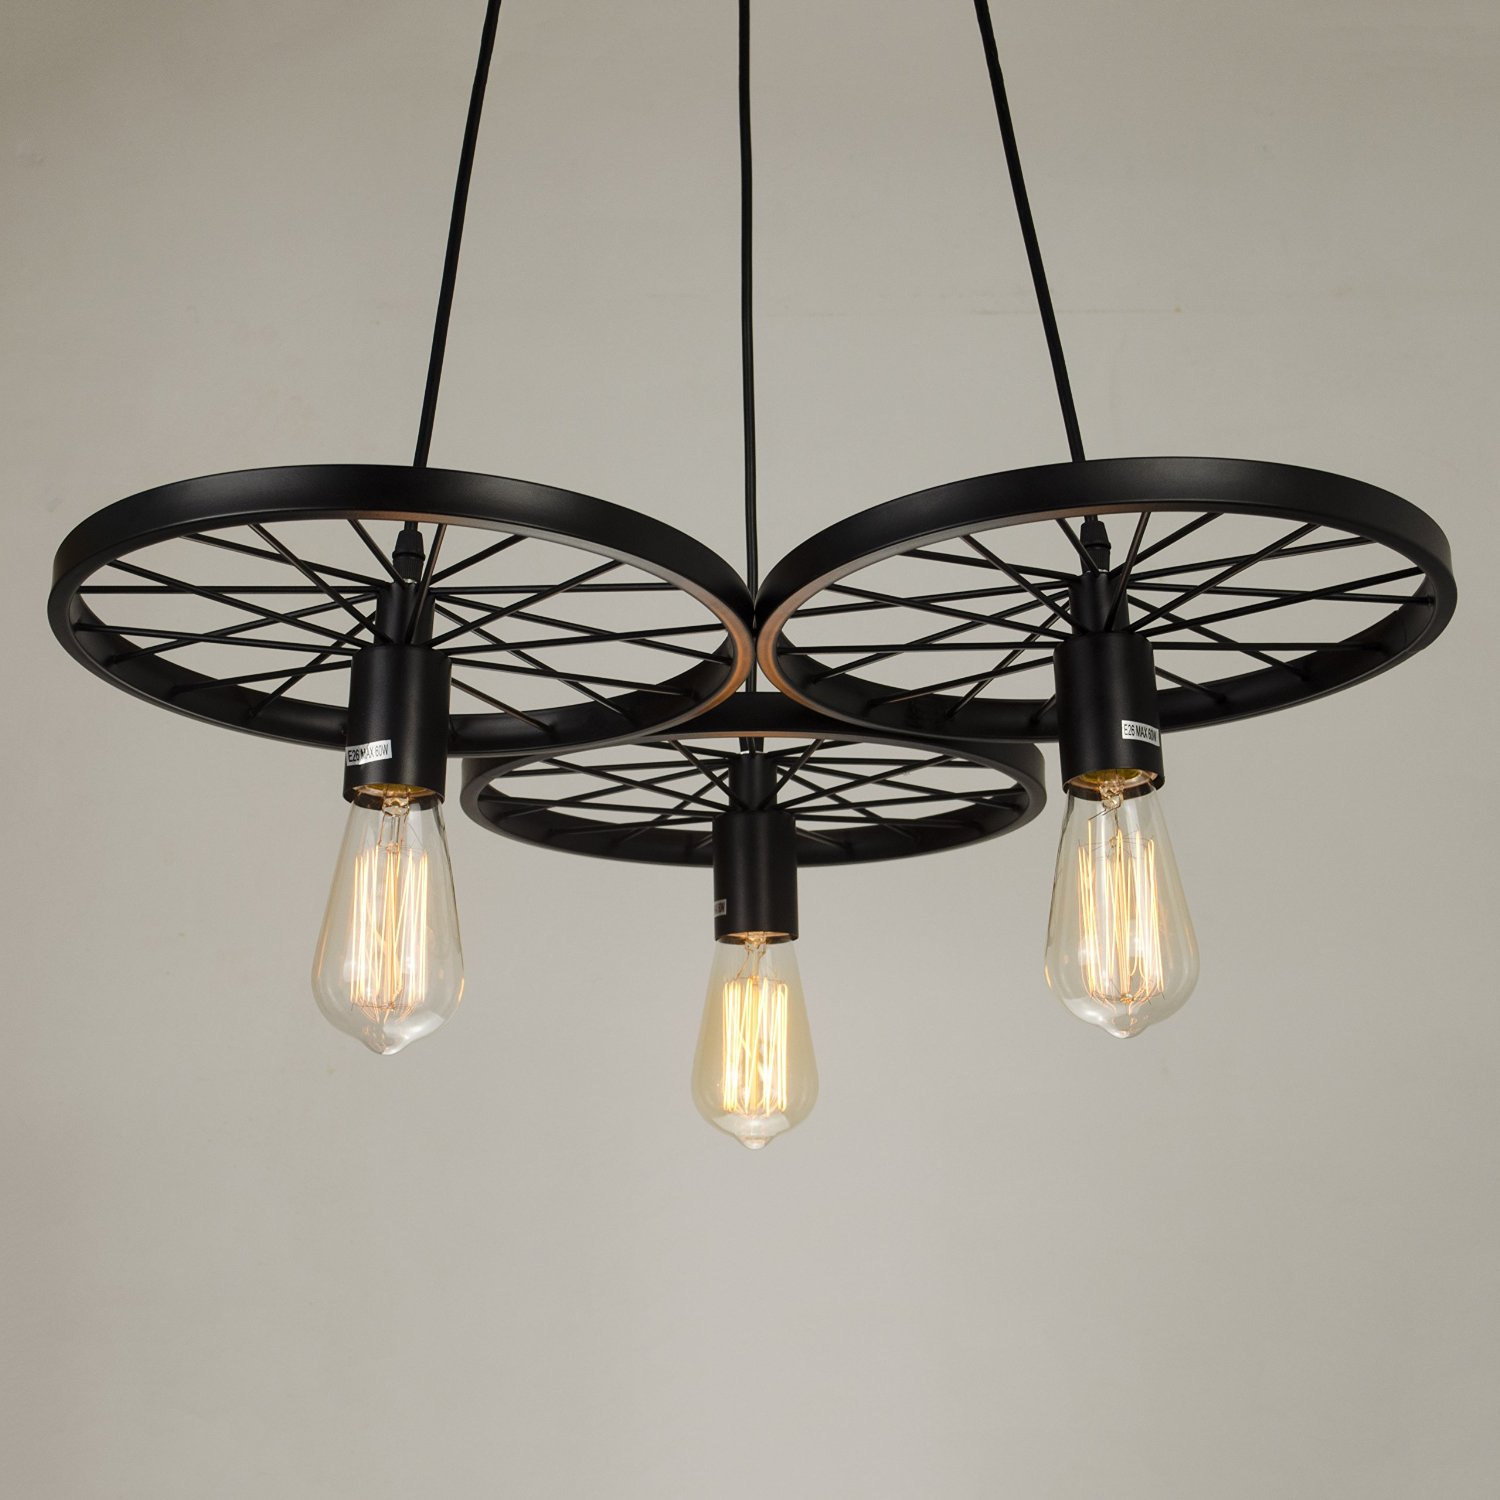 Industrial style pendant light 3 edison bulbs chandelier lighting kitchen pendan chandeliers - Can light chandelier ...